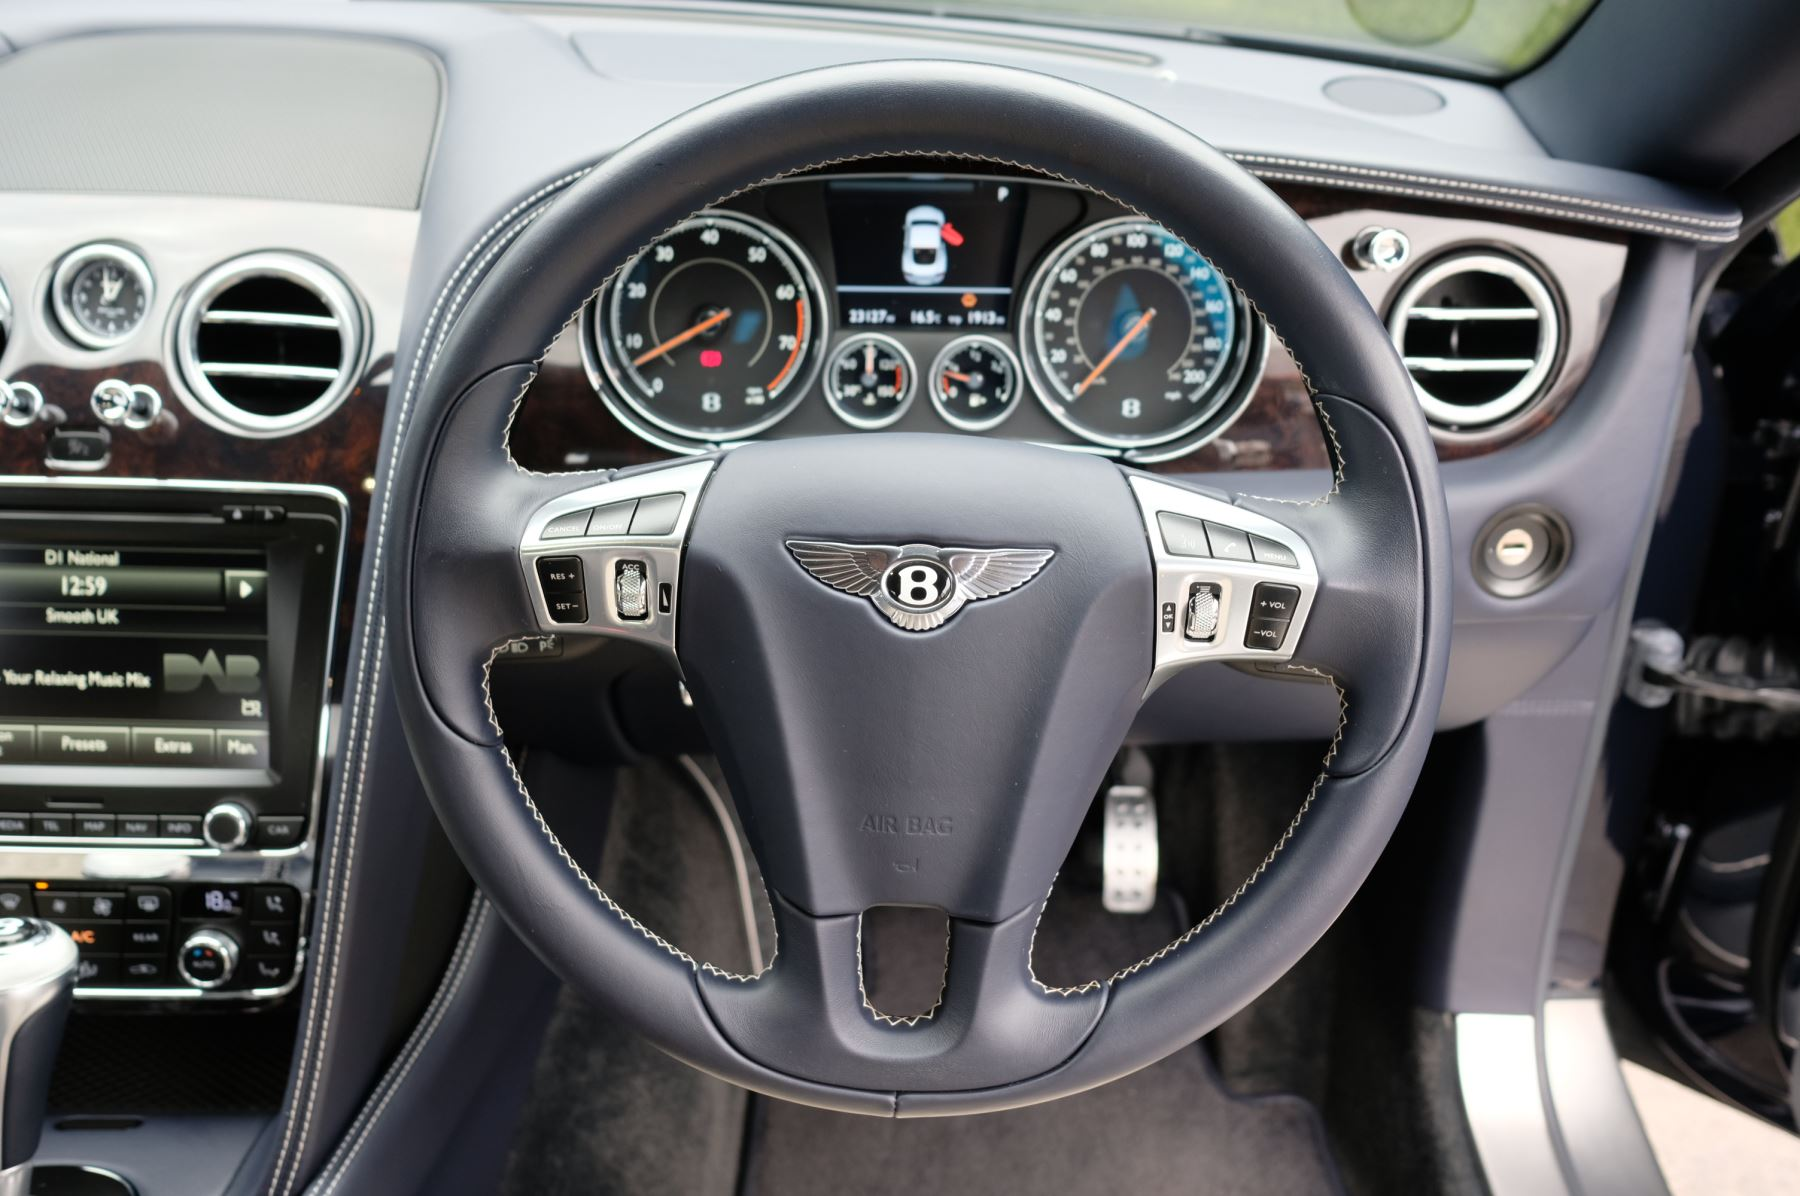 Bentley Continental GT 6.0 W12 [635] Speed - 21 inch Directional Sports Alloys - Ventilated Front Seats with Massage image 15